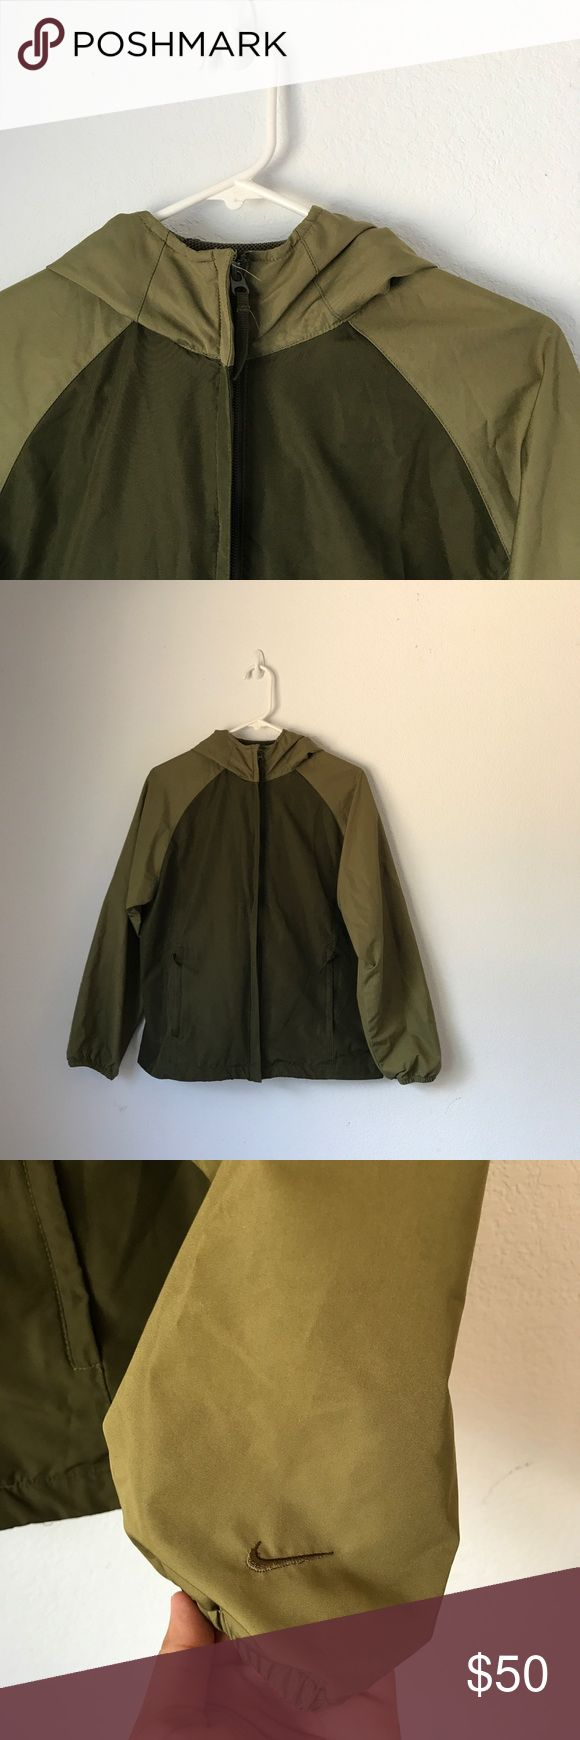 Nike Camo/Olive Green Windbreaker Fits M/L Accepting offers. No low ballers or trades. Small stain on hood. See last pic. Not noticeable. Size SMALL ON TAG in women's but FITS larger. Fits a medium loosely and a large fitted. Has a cap looking good. Very stylish. Pair with Nike sneakers and capris or shorts. Retail $110. Will take measurements if requested. Nike Jackets & Coats